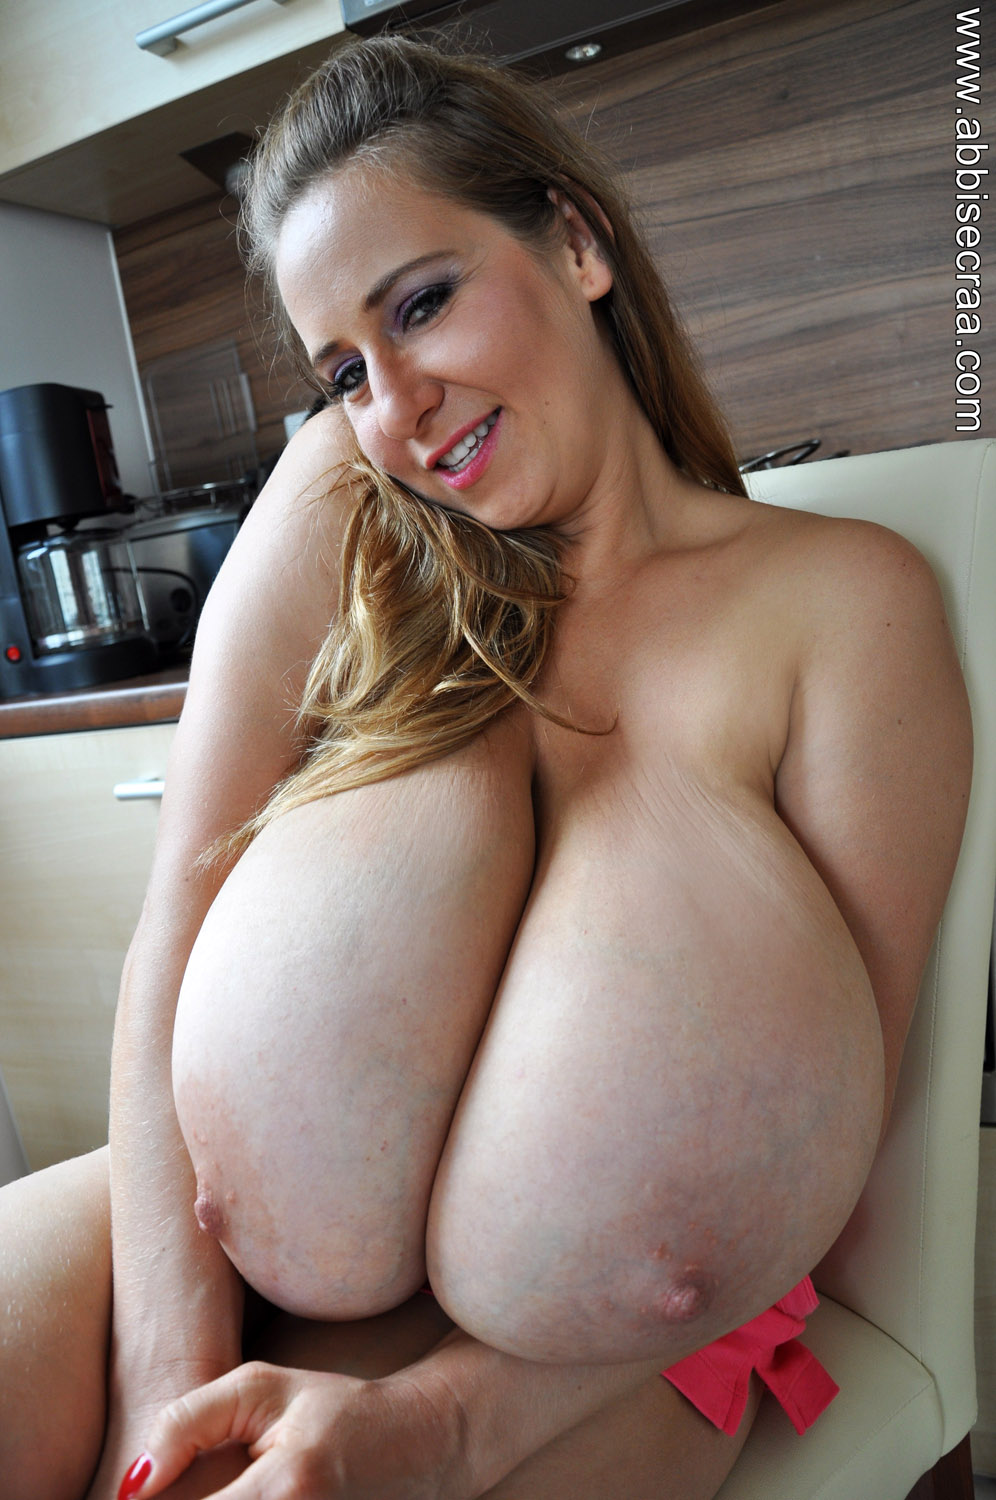 That would Big boobs abbi secraa cumshot what words